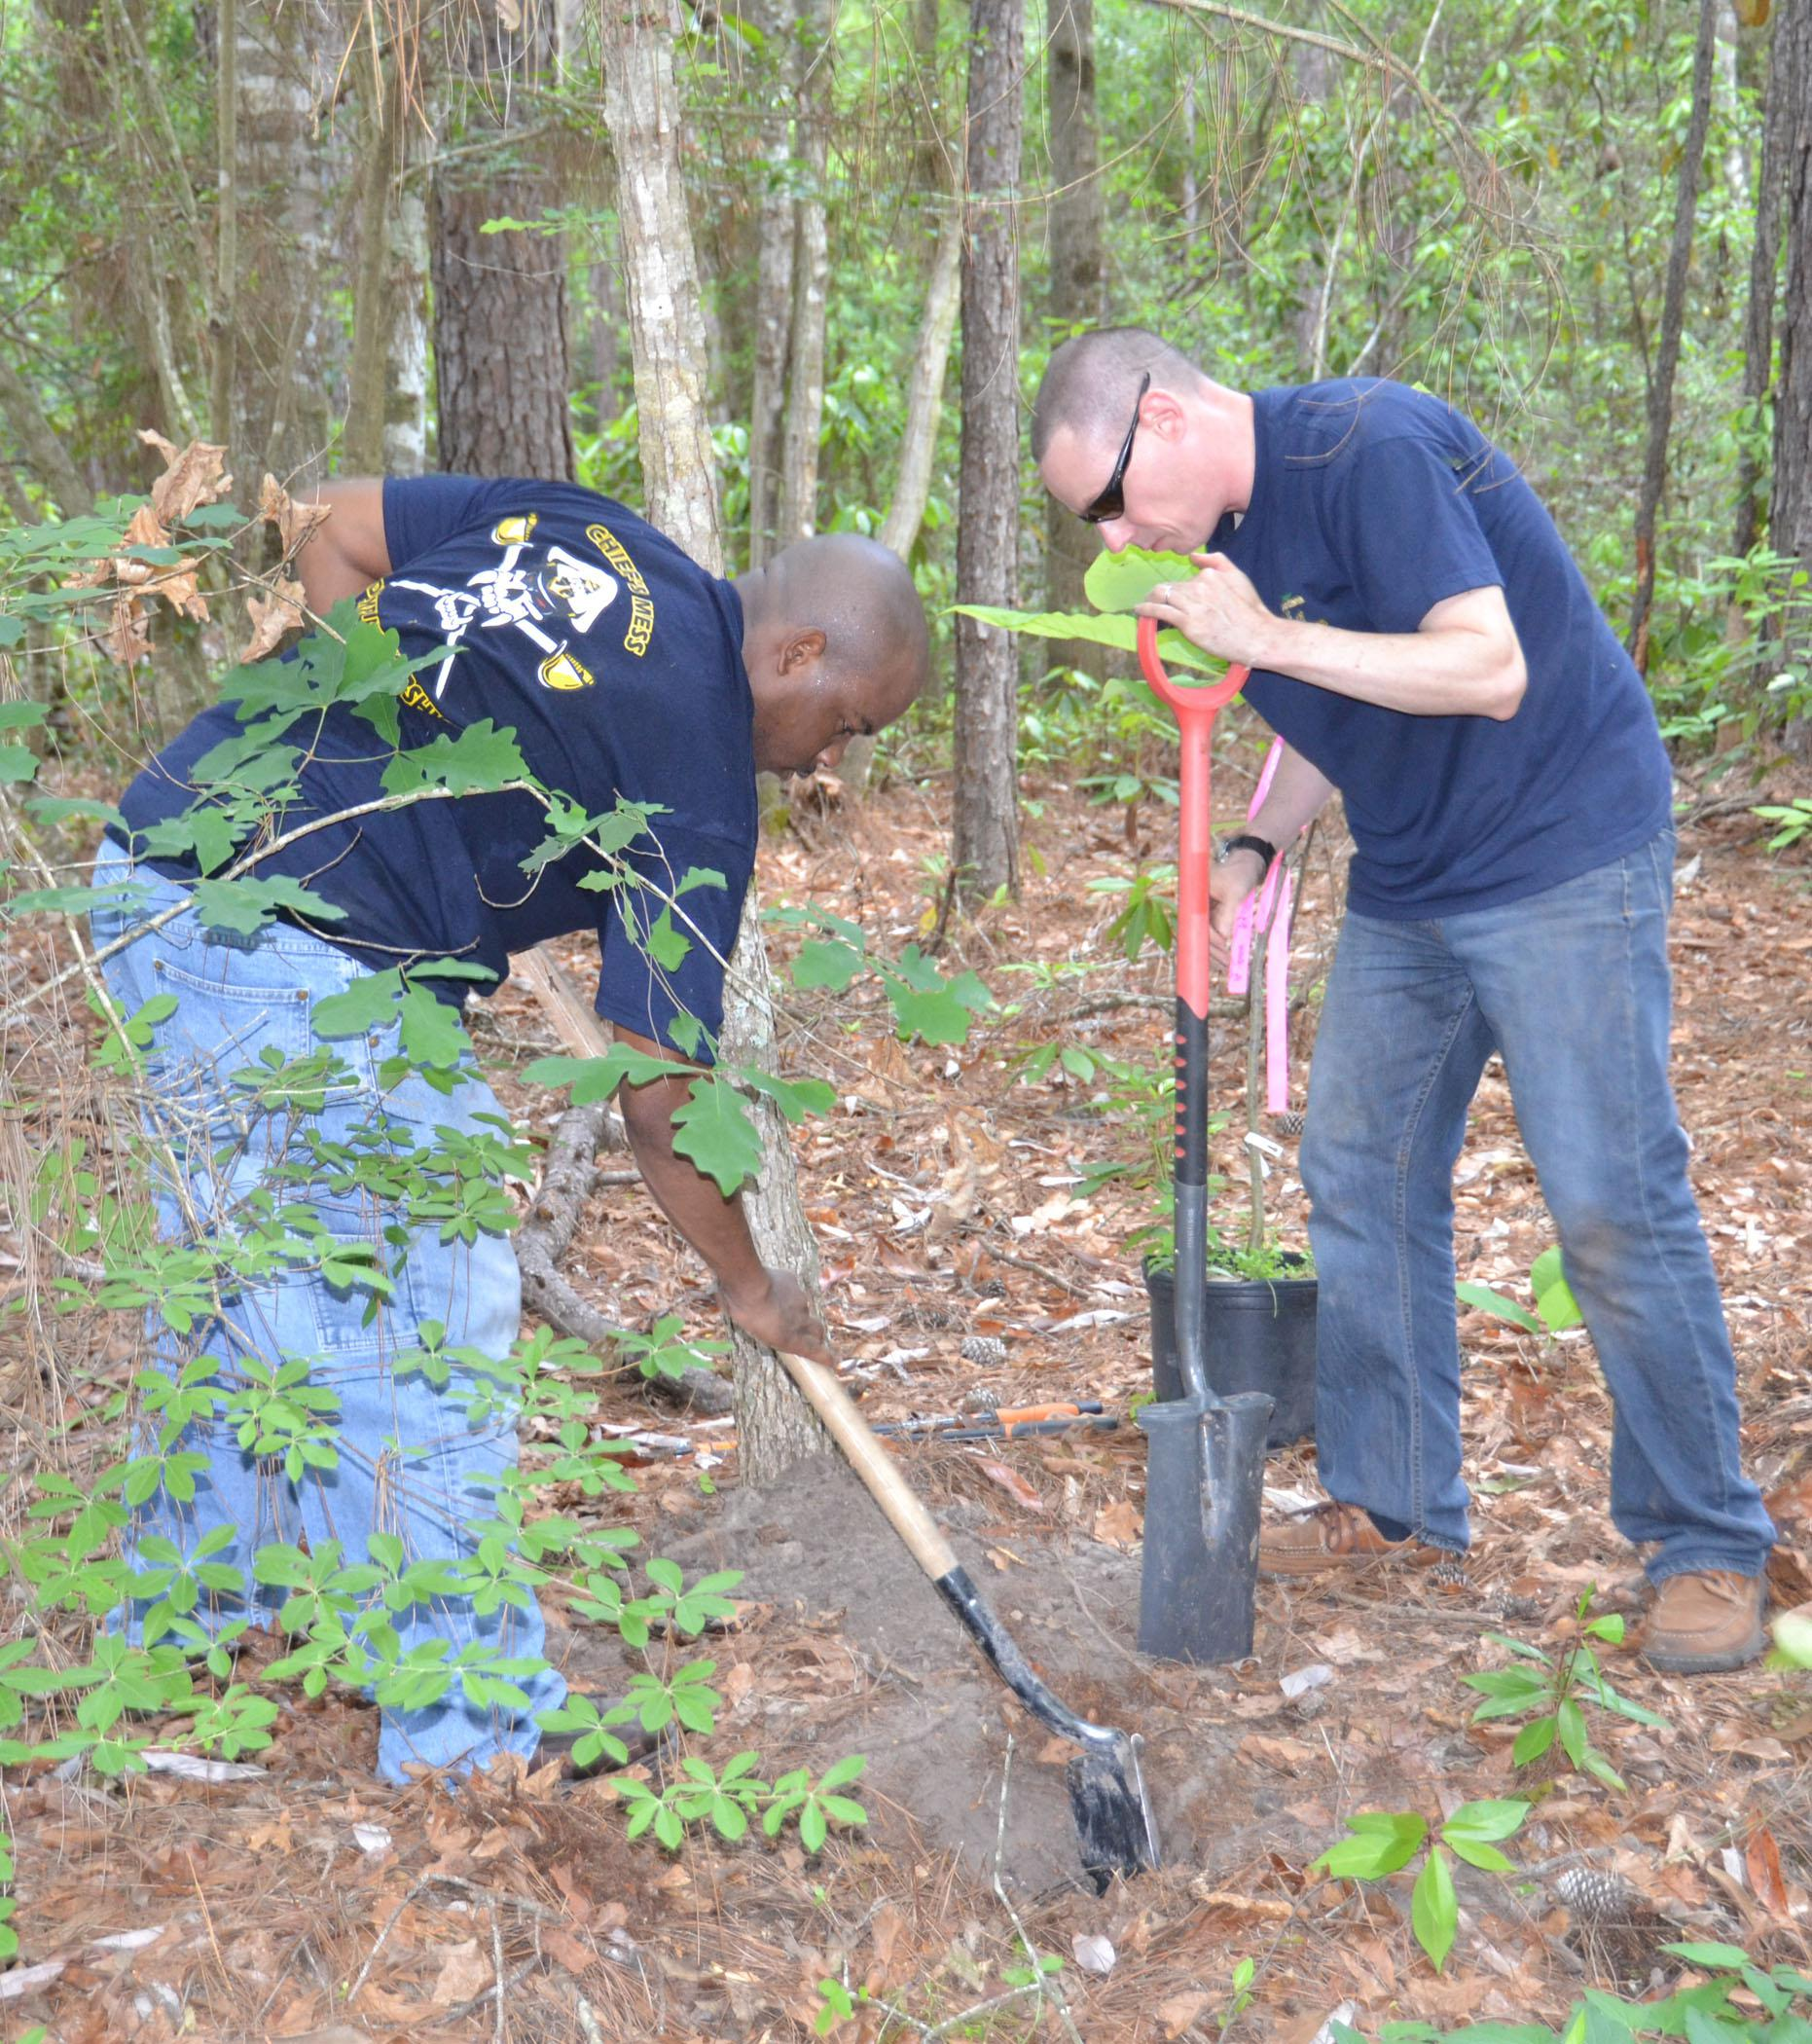 Navy Chief Contrail Allen, left, and Navy Chief Ryan Done plant a Bigleaf Magnolia on the Arrival Journey Exhibit at the Crosby Arboretum on May 8. About 20 Navy volunteers from the Stennis Space Center helped repaint the entrance gates, prune vegetation along the trails and construct part of the new Swamp Forest Education Exhibit. (Photos by Susan Collins-Smith)